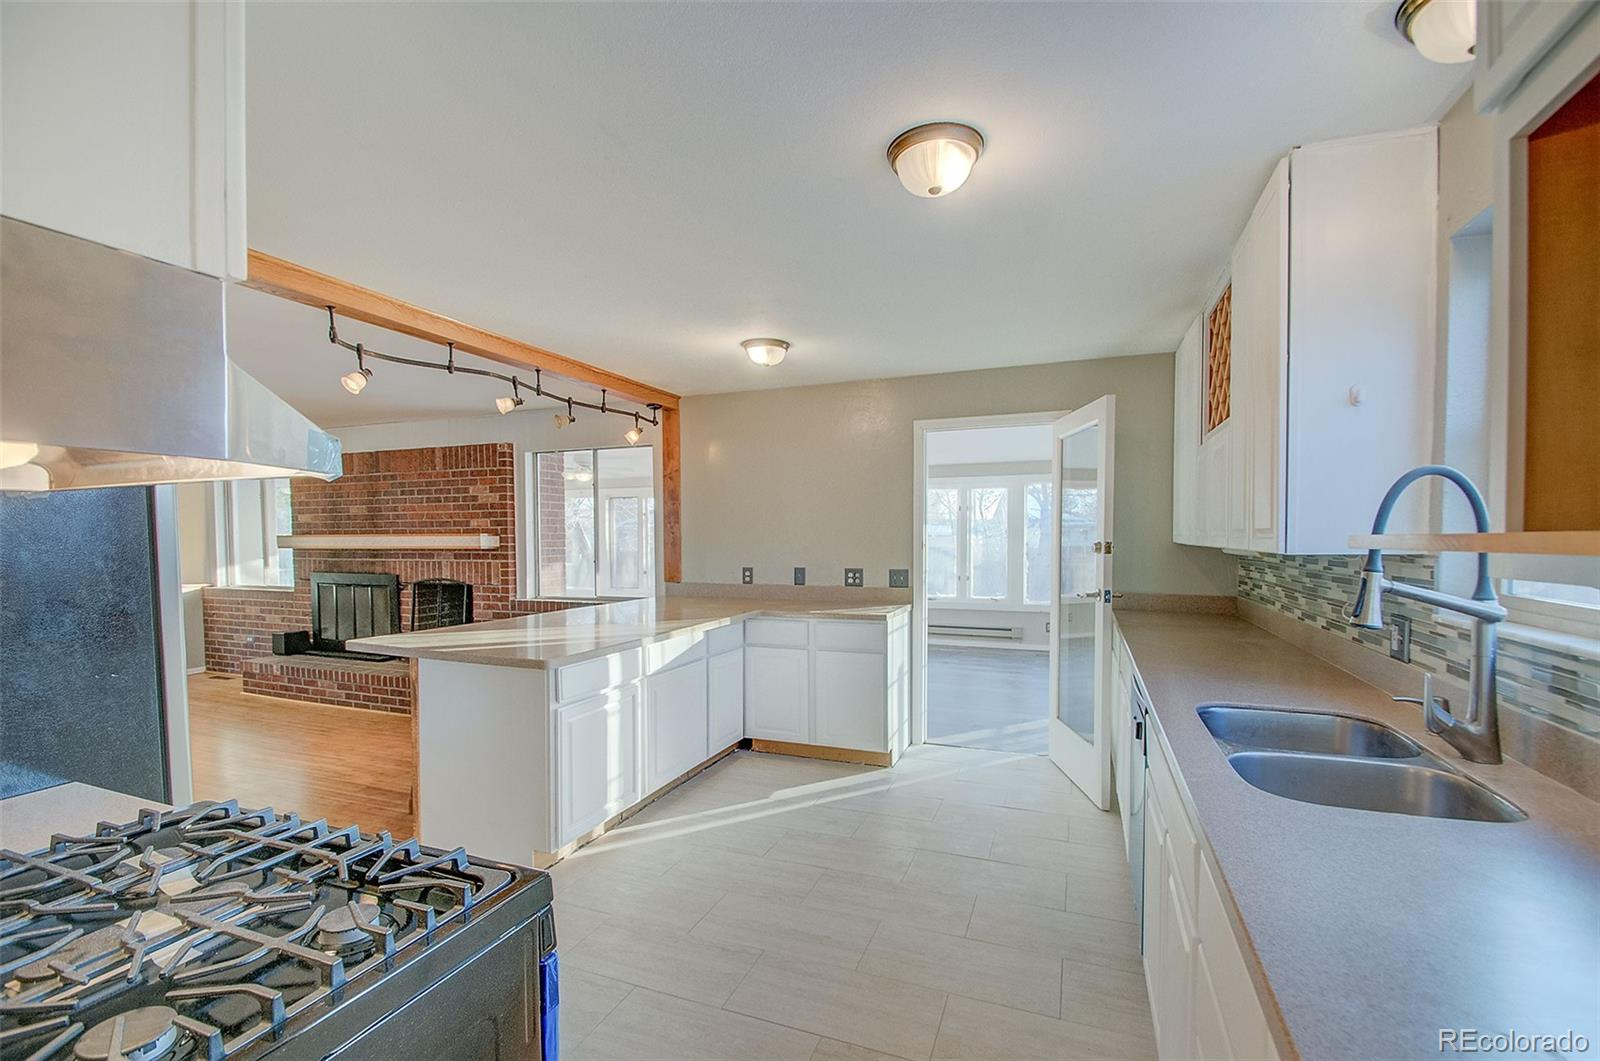 MLS# 2260867 - 10 - 6075 W 82nd Place, Arvada, CO 80003